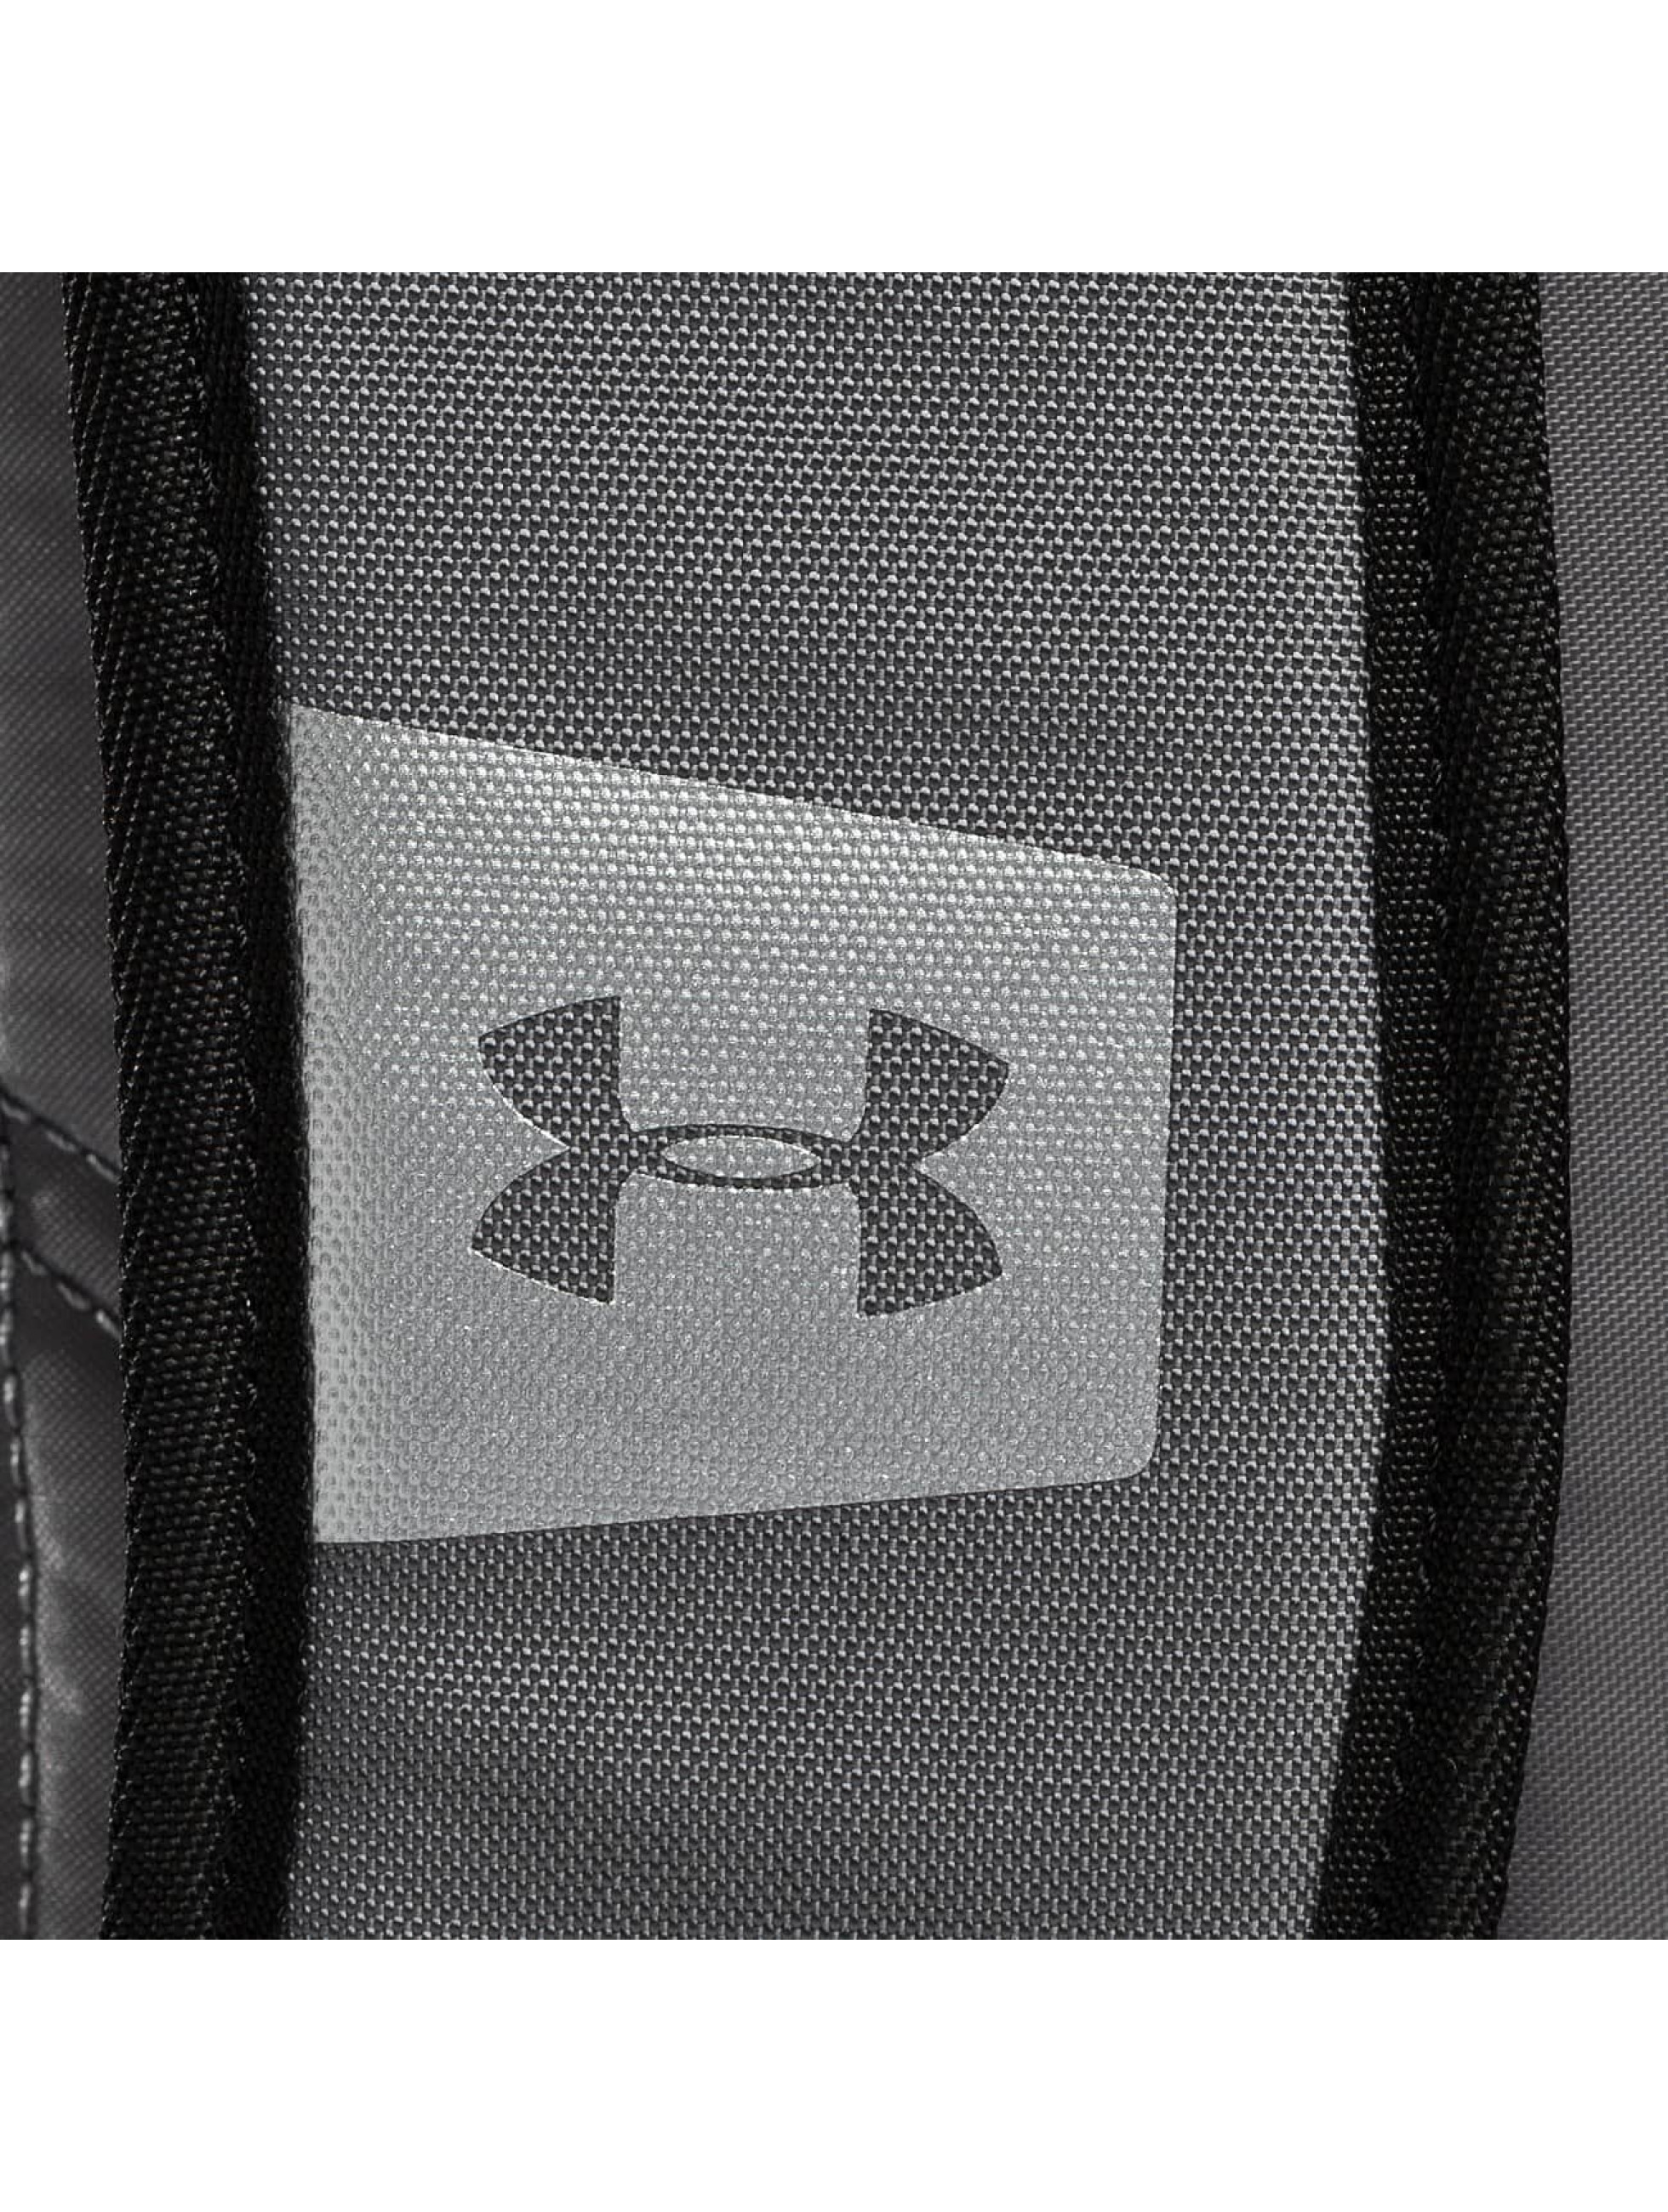 Under Armour Ryggsekker Hustle LDWR grå